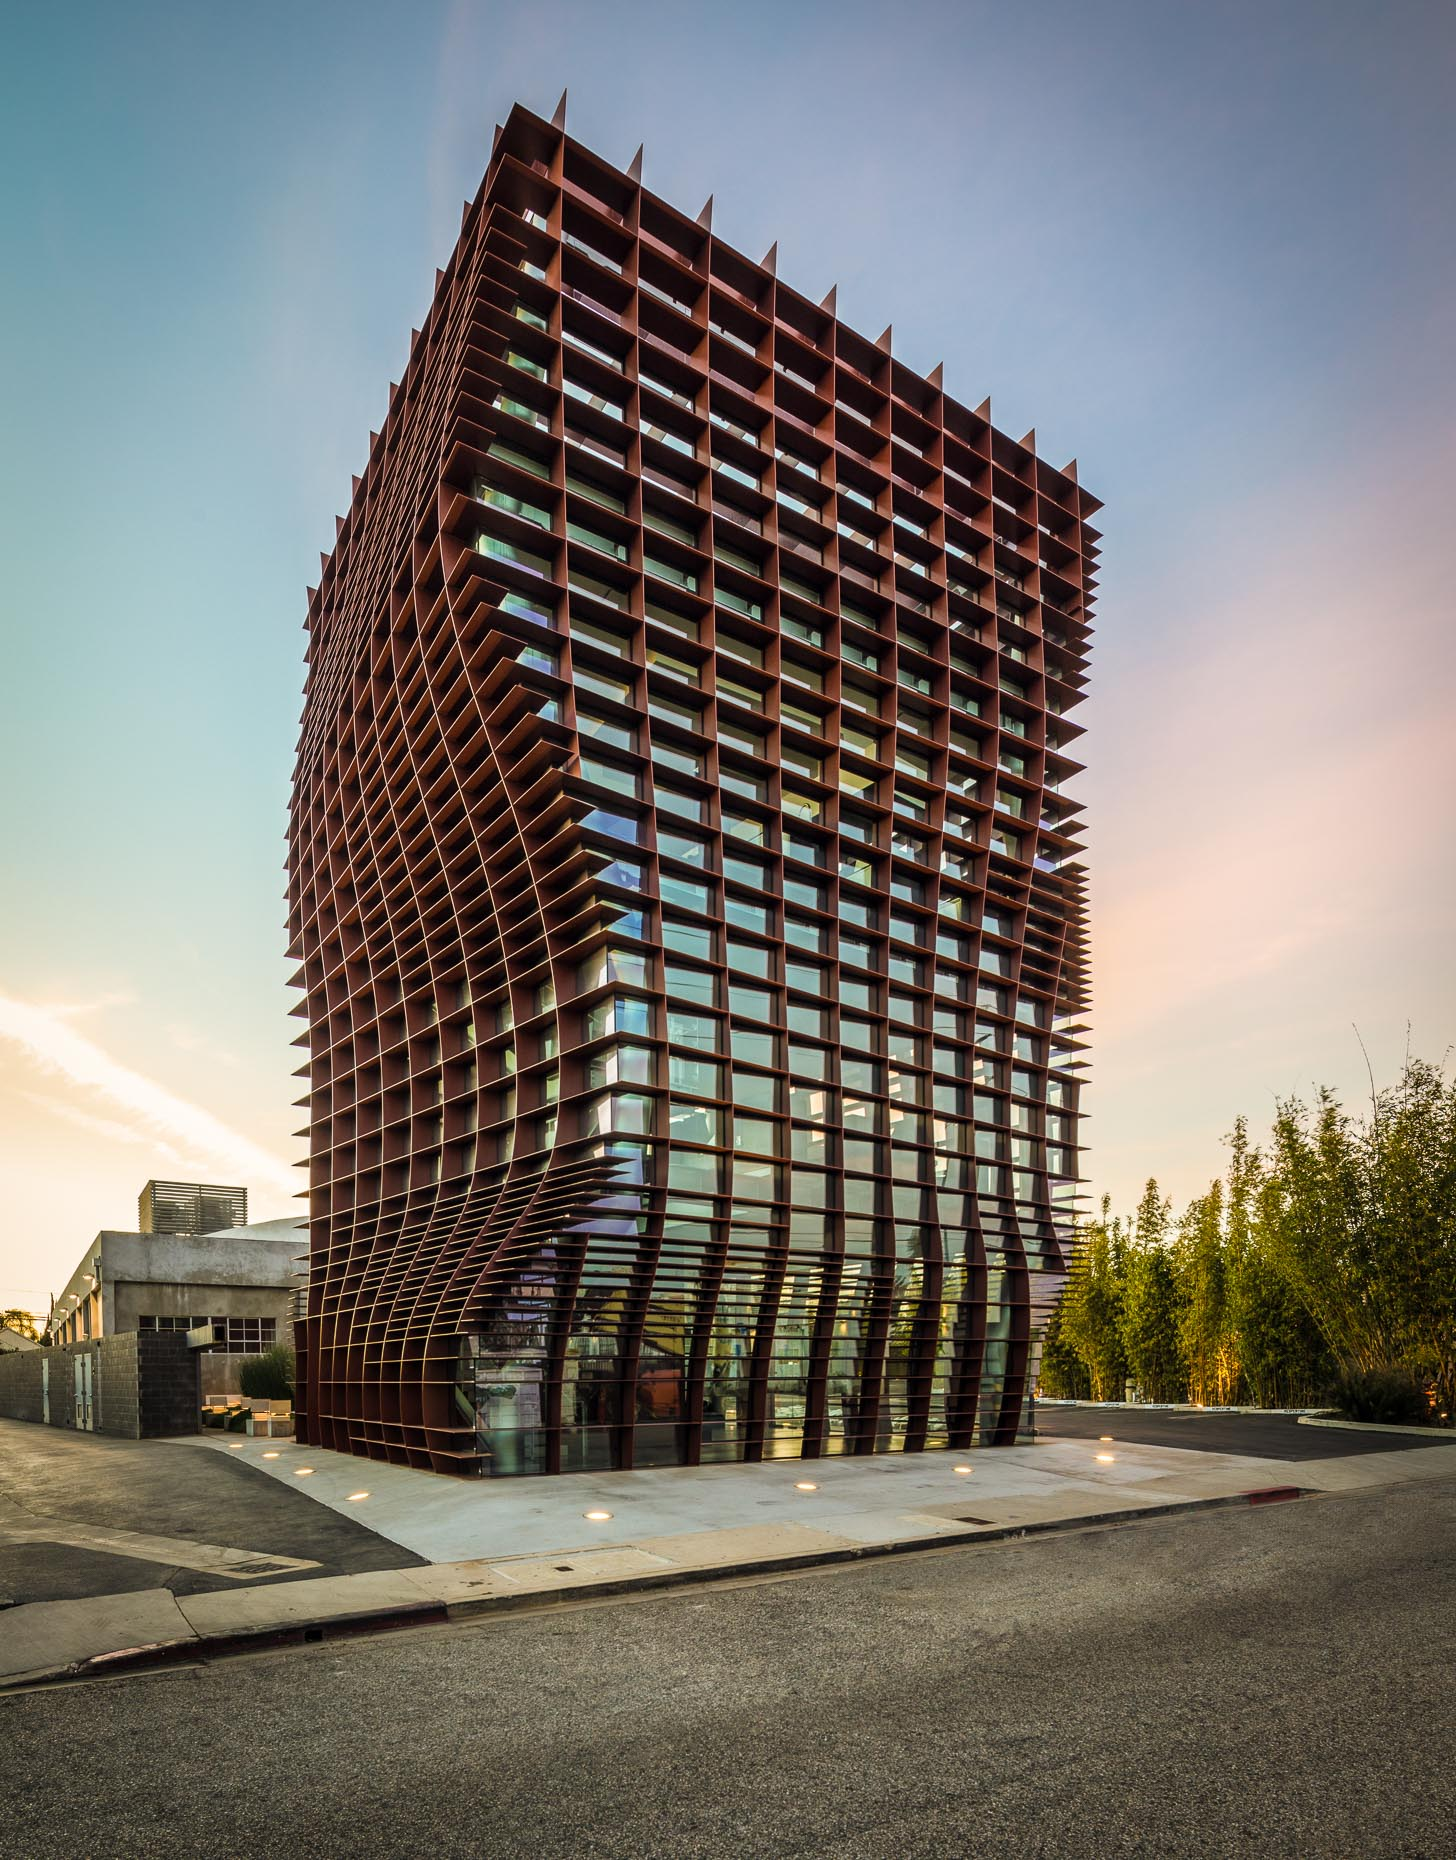 Waffle Building in Culver City, California